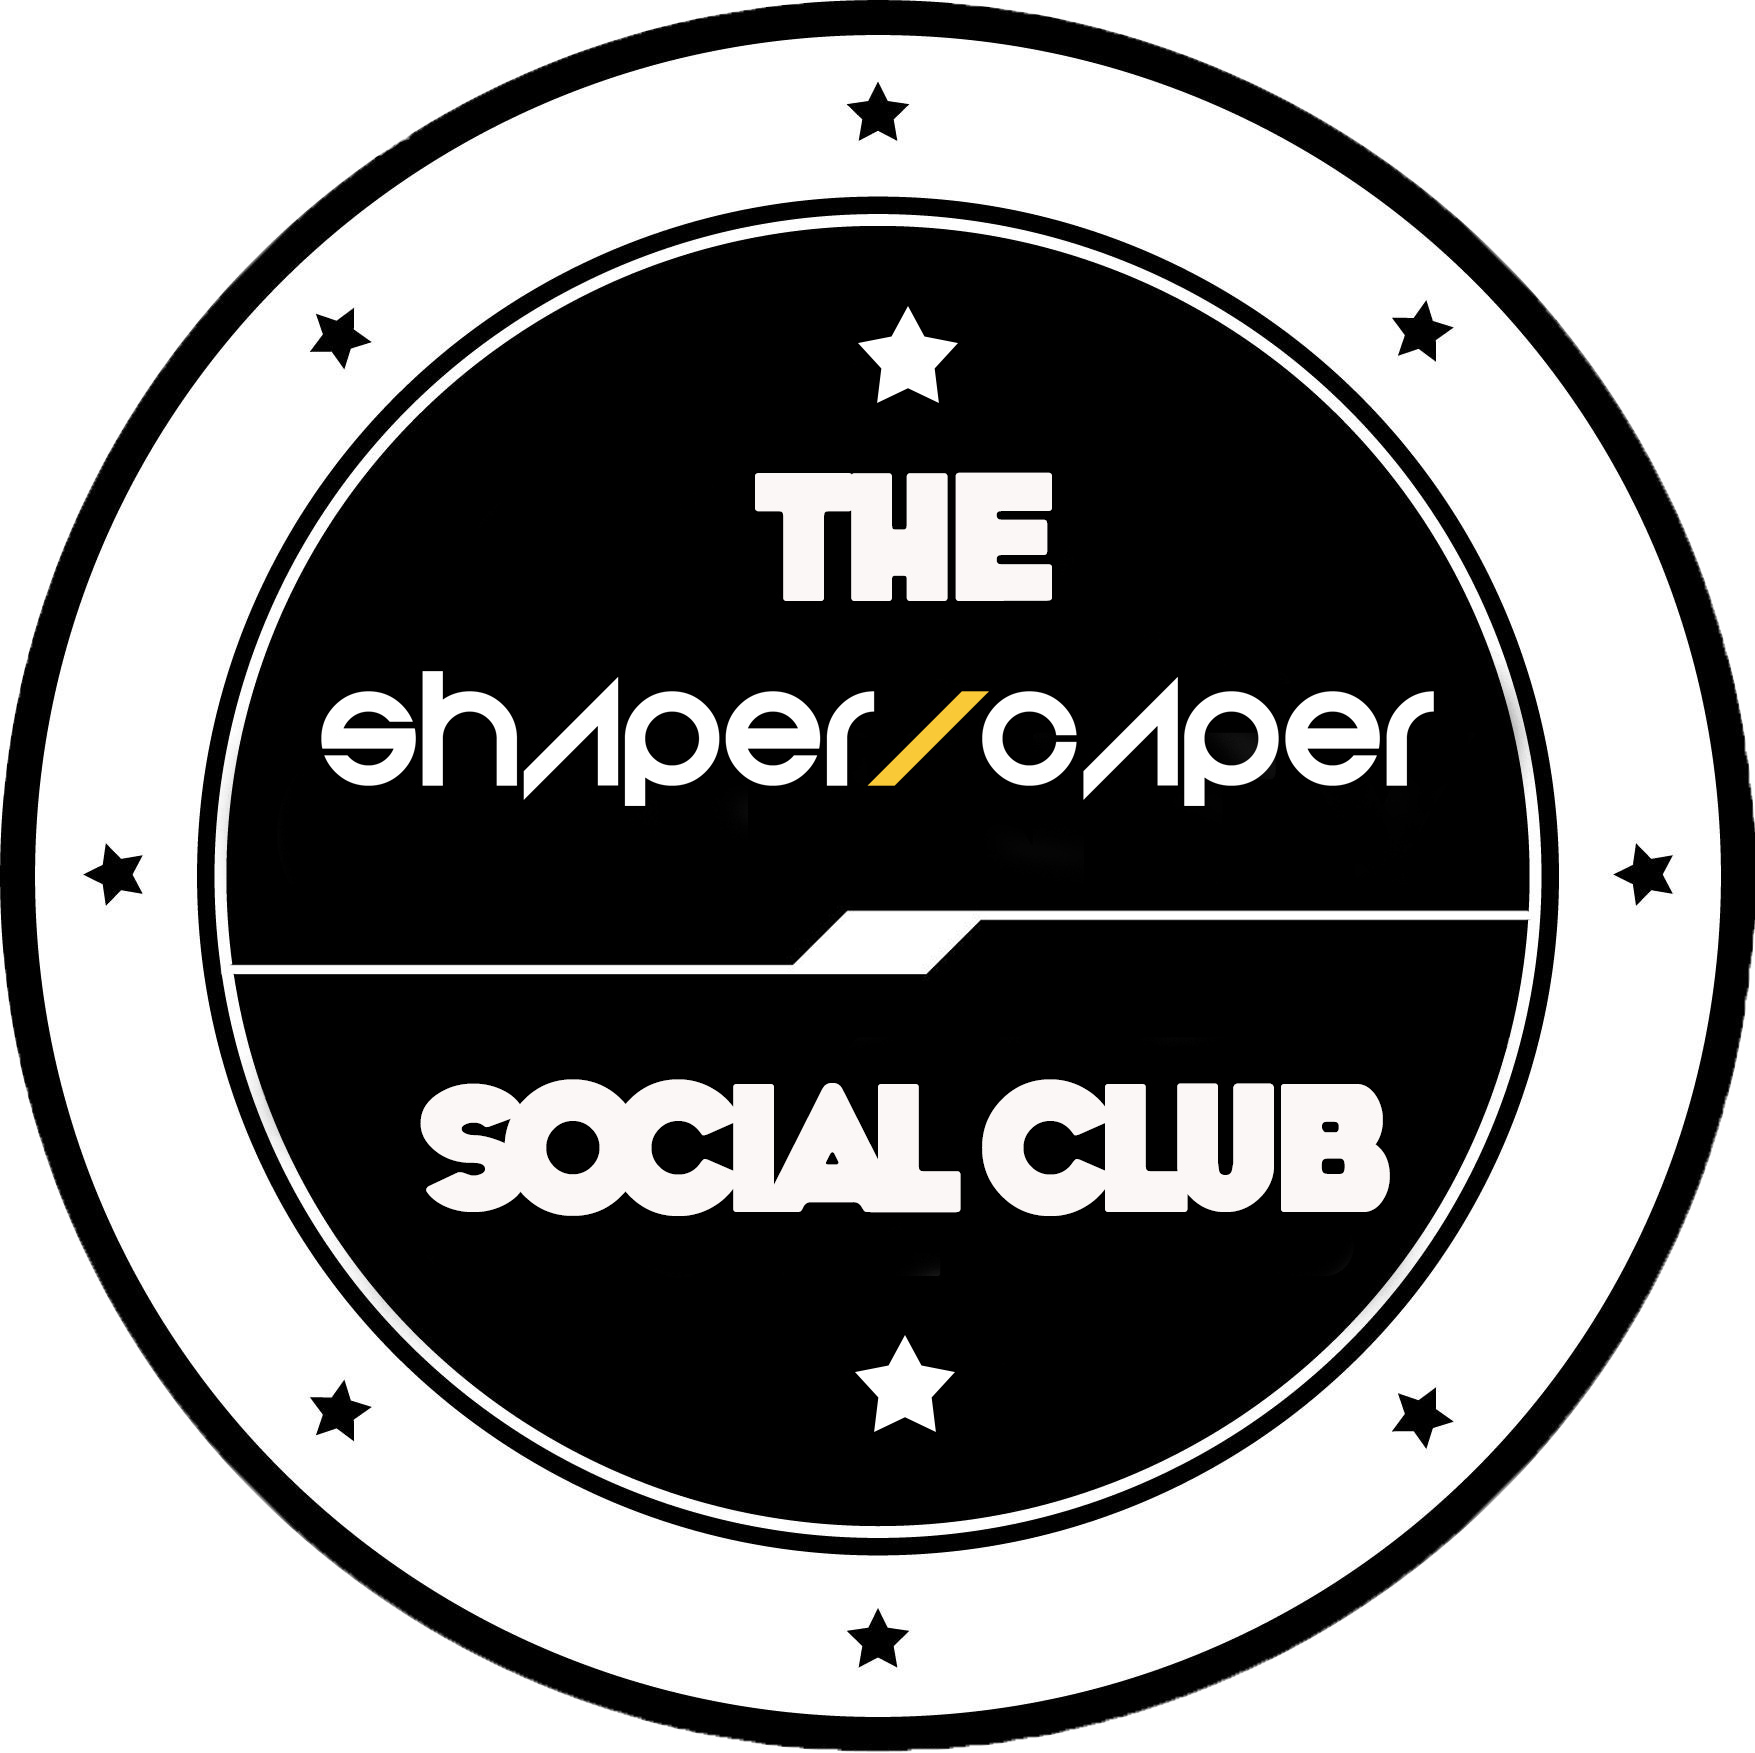 SOCIAL CLUB copy copy.png